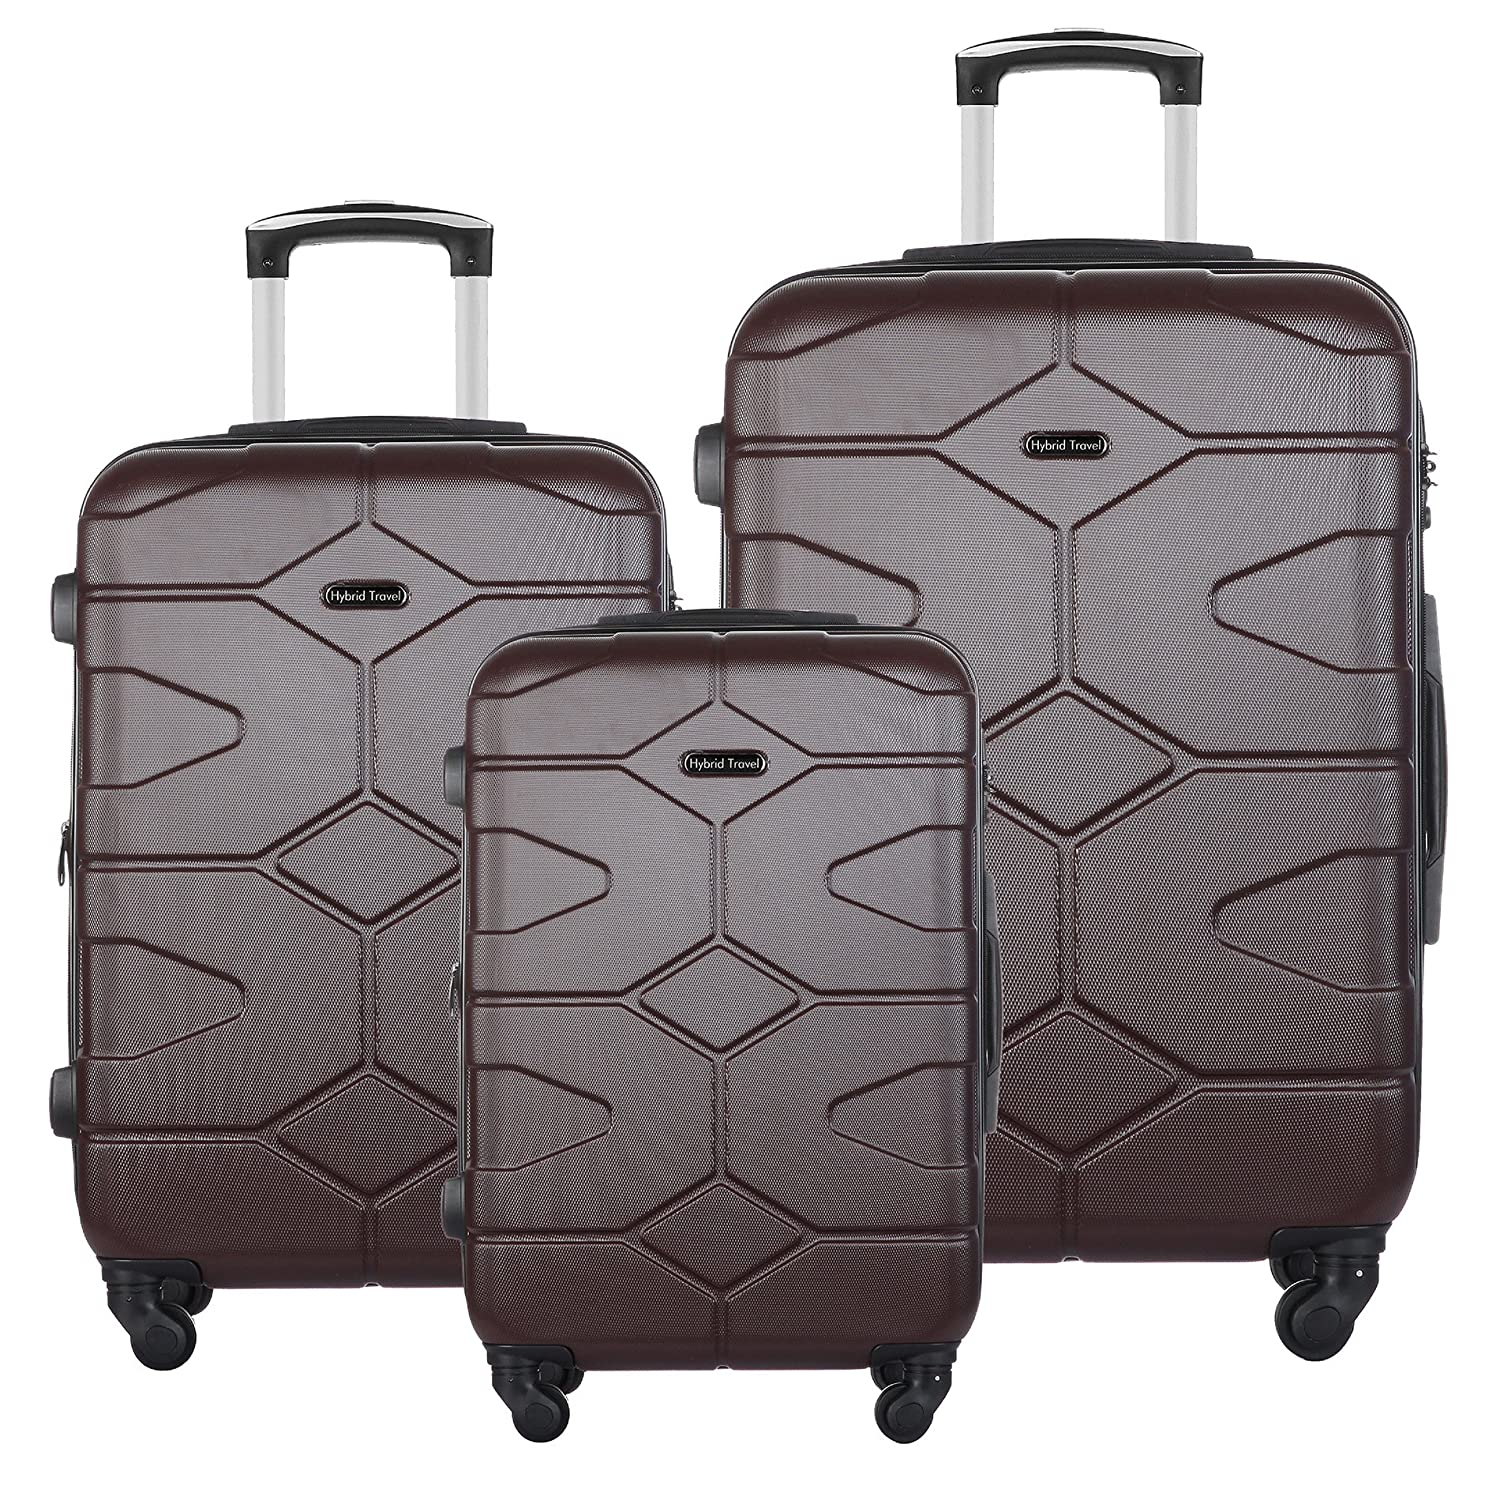 3 PC Luggage Set Durable Lightweight Hard Case Spinner Suitecase LUG3 SS505A BLUE